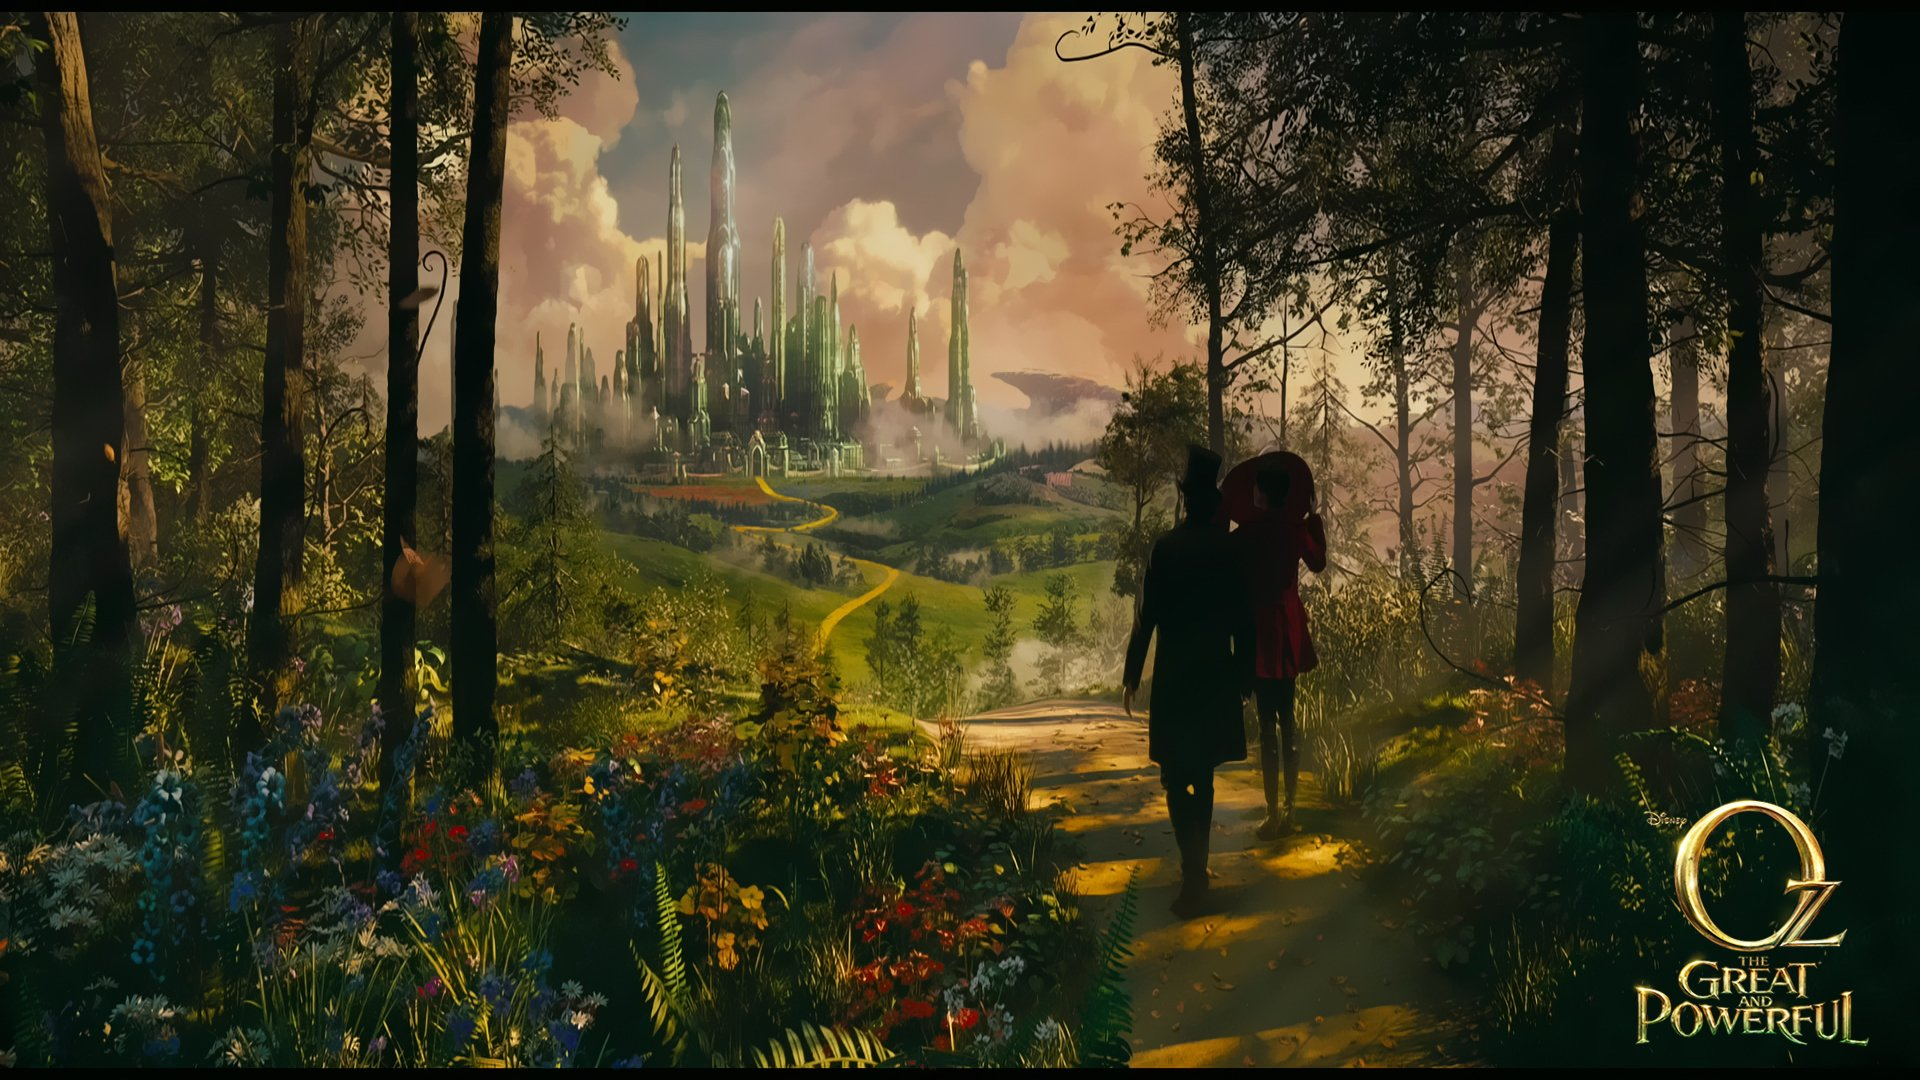 Oz the great and powerful hd wallpaper background image 1920x1080 id 290794 wallpaper abyss - The wizard of oz hd ...